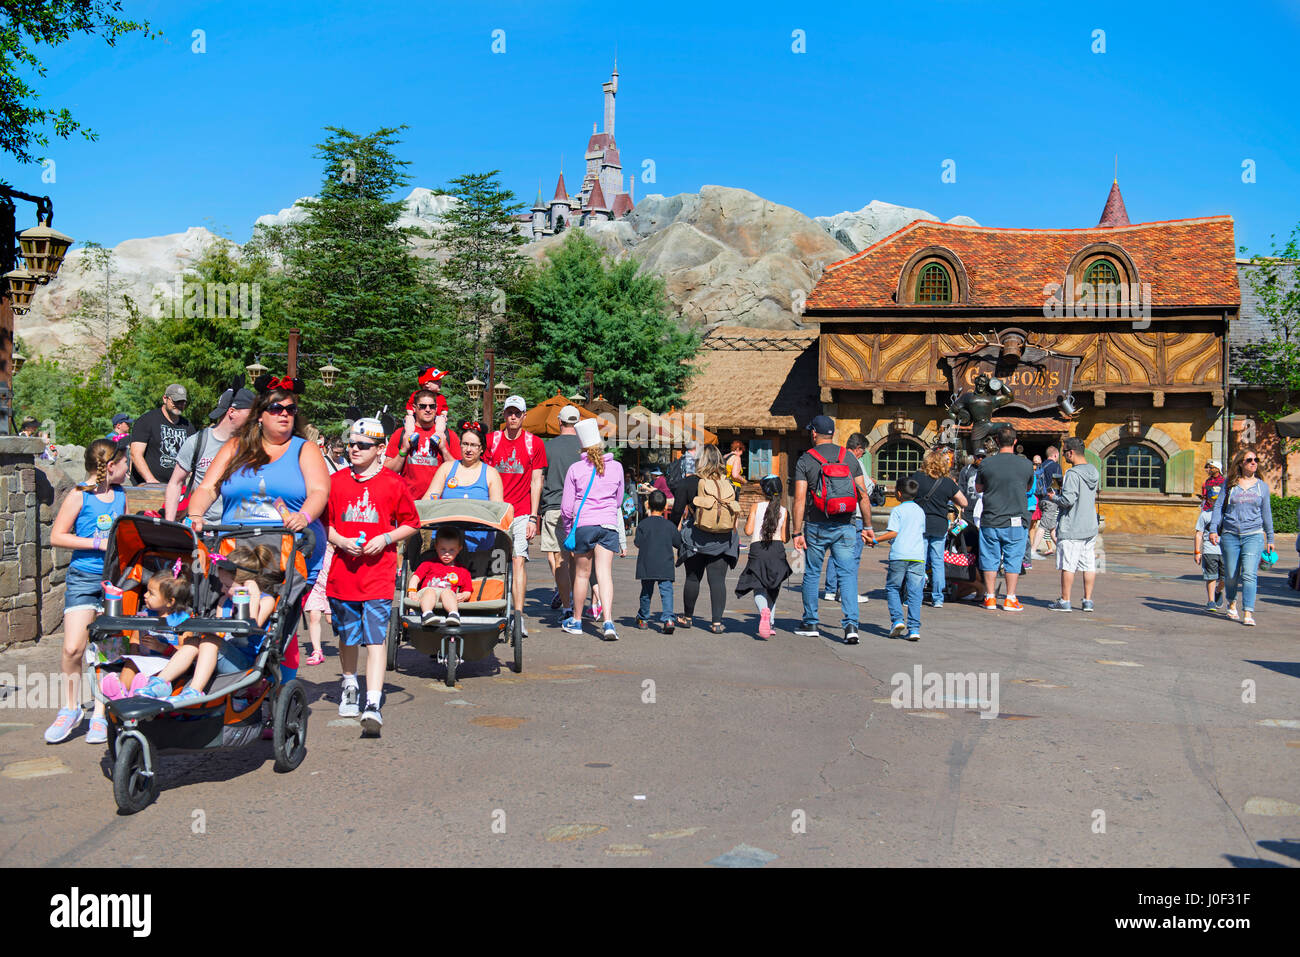 Family, Families with Children Kids in Strollers, Disney World, Orlando Florida - Stock Image